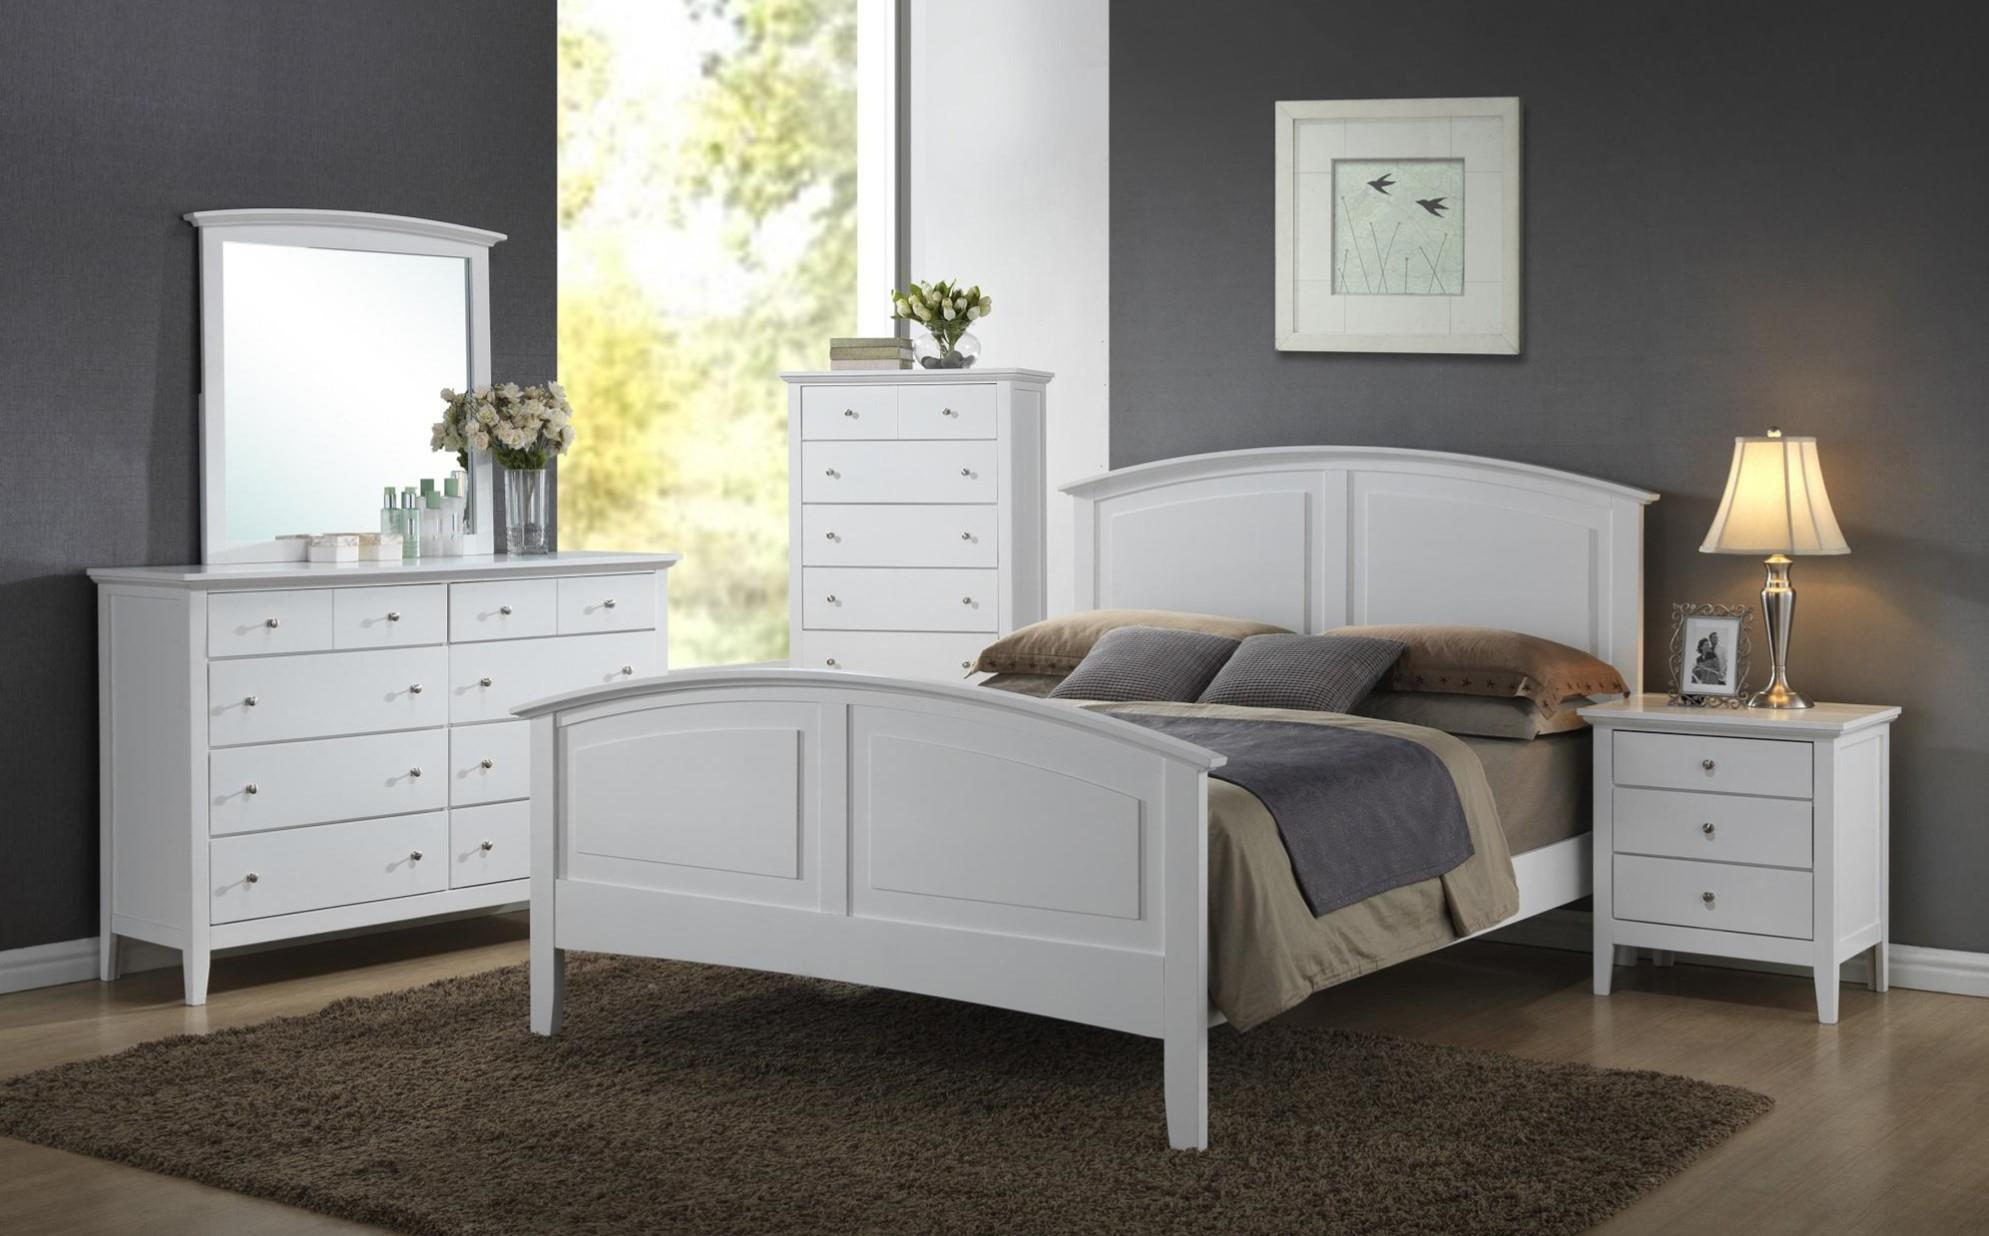 Crossroads Furniture 3226 Carter Full BED COMPLETE; Full HB, FB, Rails & Slats